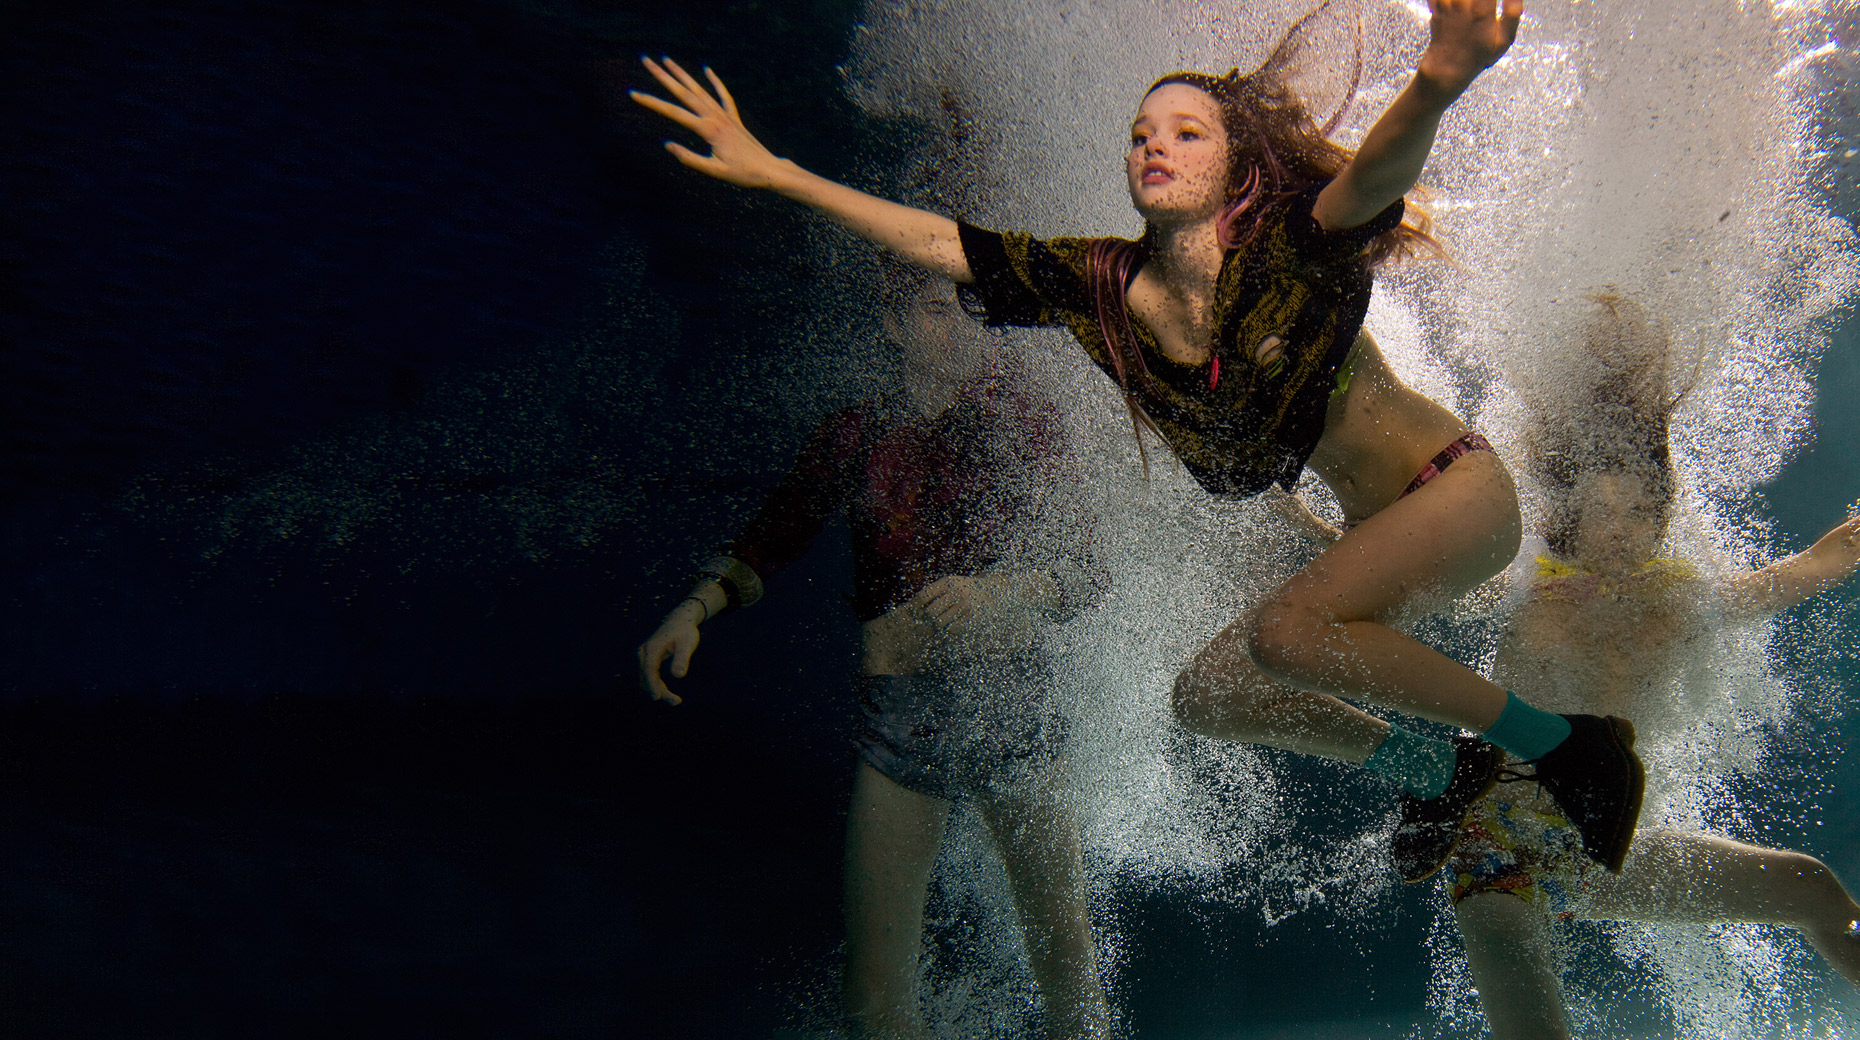 KMR_Glamour-Spain_Underwater-Love-Story_510_HR-5